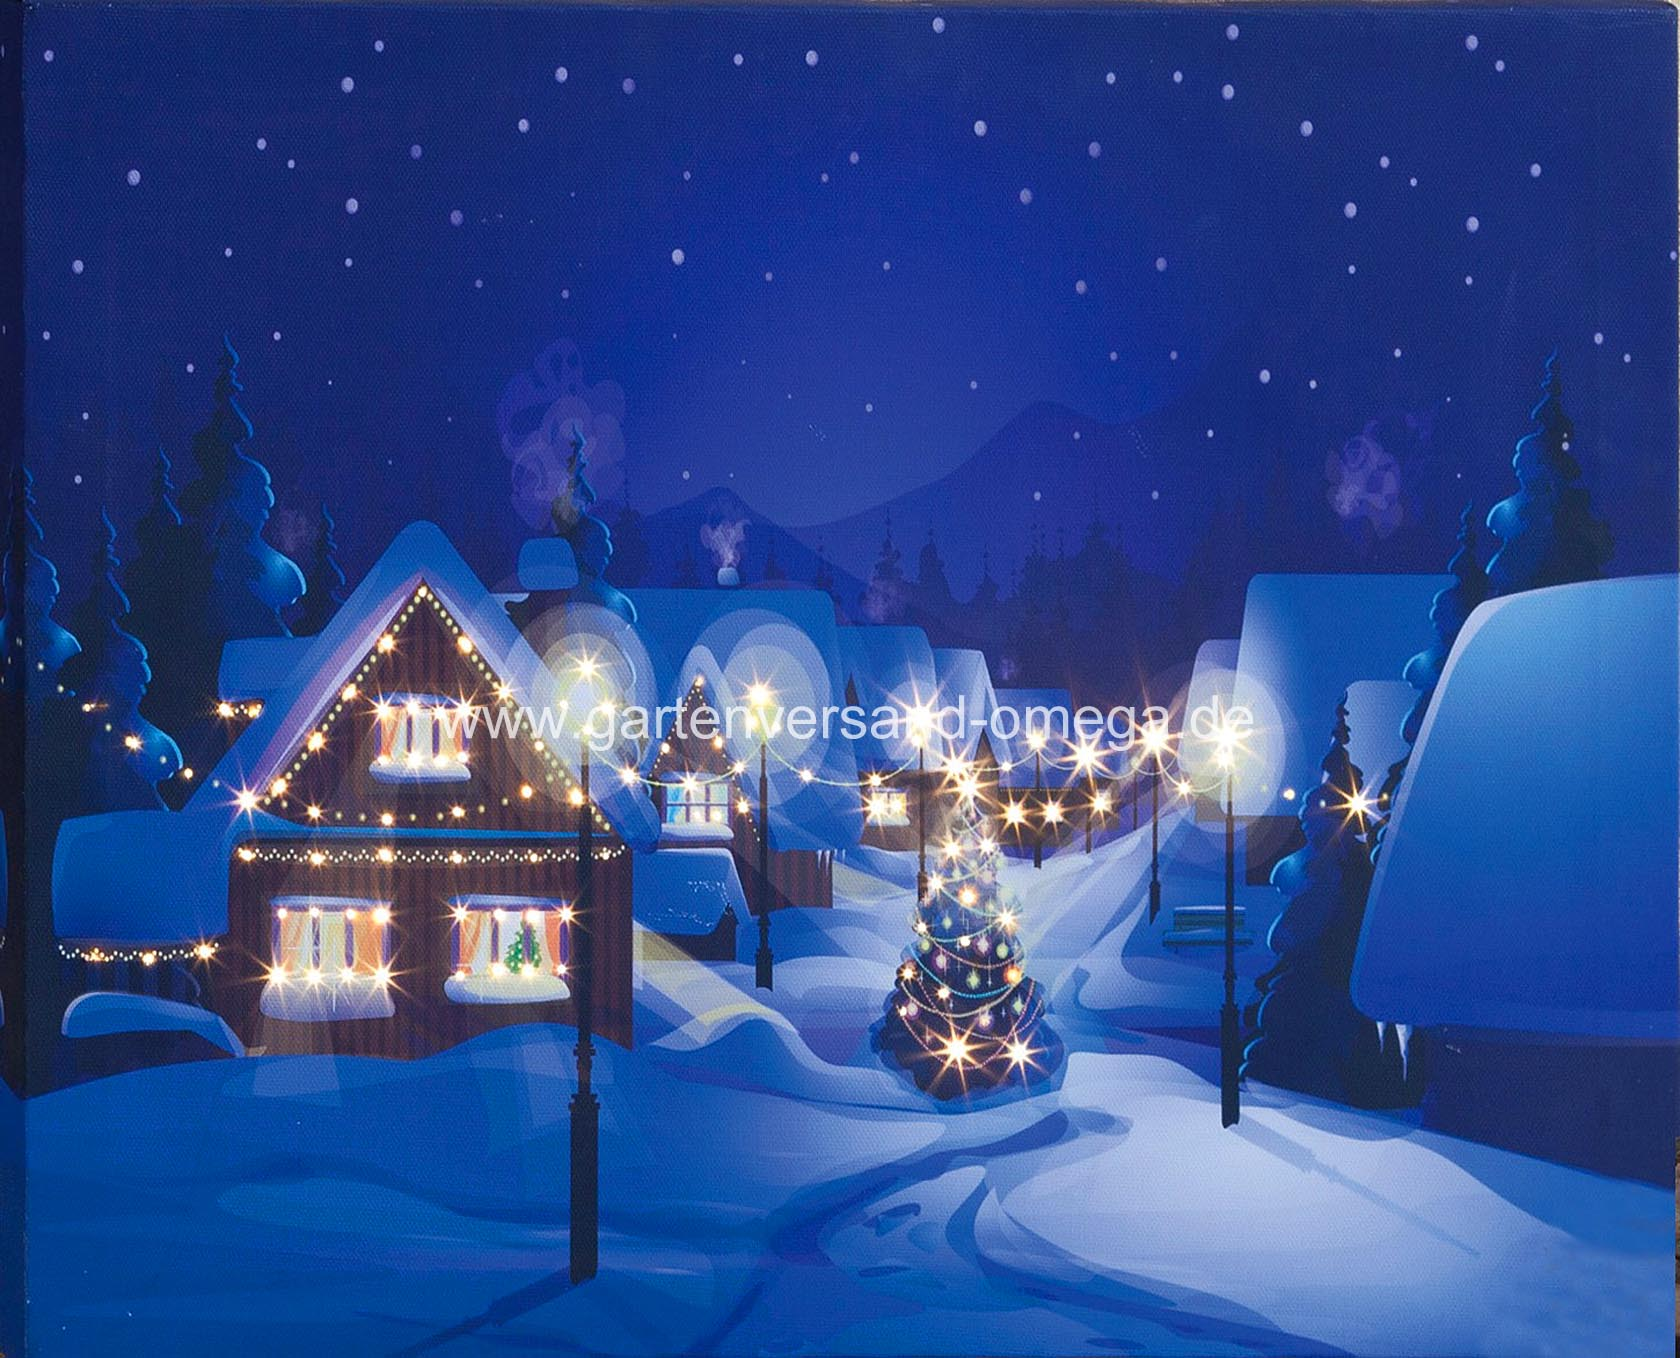 led bild dorf im winter fiberoptikbild beleuchtetes bild weihnachts wandschmuck led bild. Black Bedroom Furniture Sets. Home Design Ideas